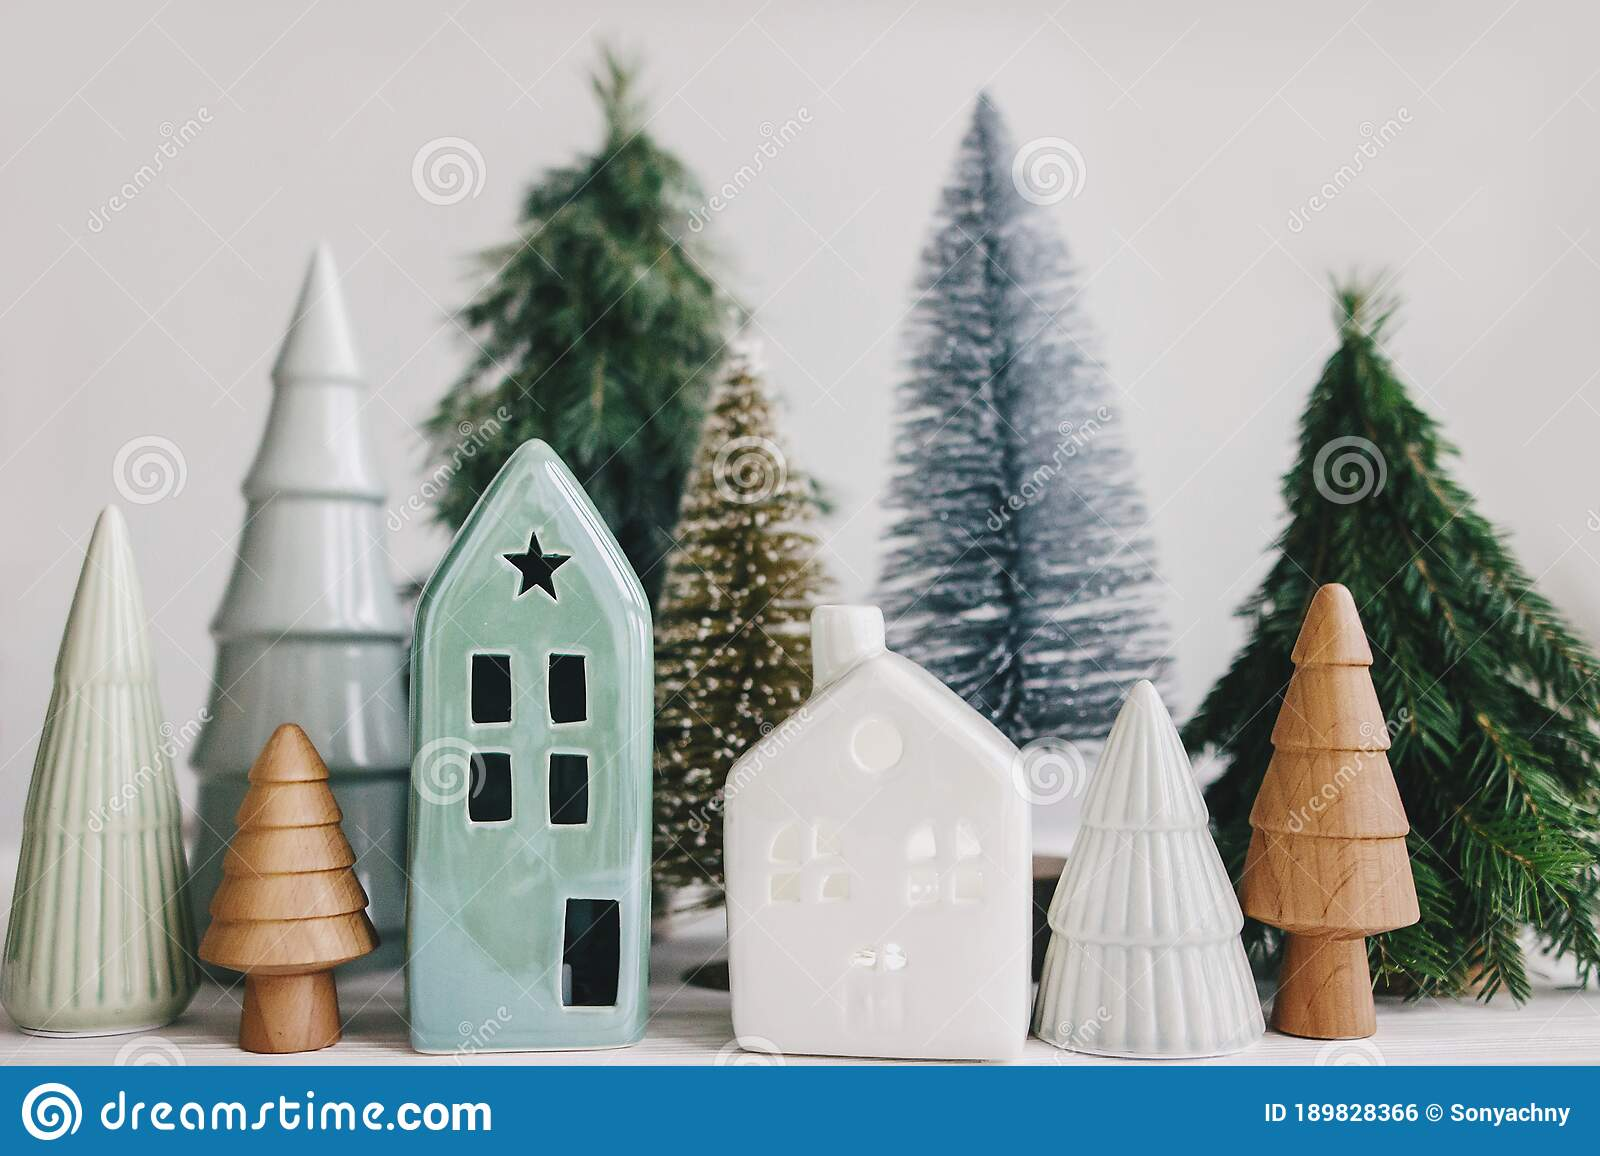 Christmas Little Houses And Trees On White Background Holiday Festive Decor Miniature Village Ceramic Houses Wooden Christmas Stock Photo Image Of House Cozy 189828366